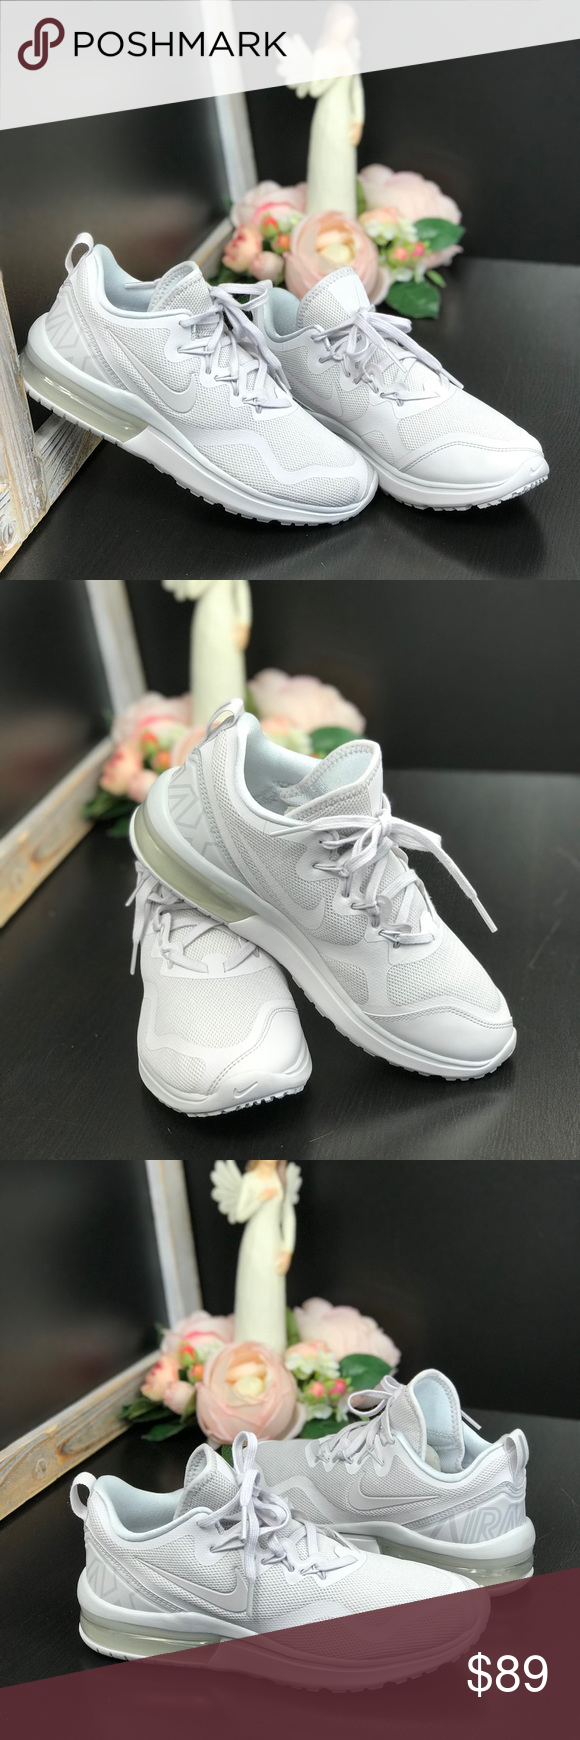 NWT Nike Air Max Fury Pure Platinum WMNS Brand new with no